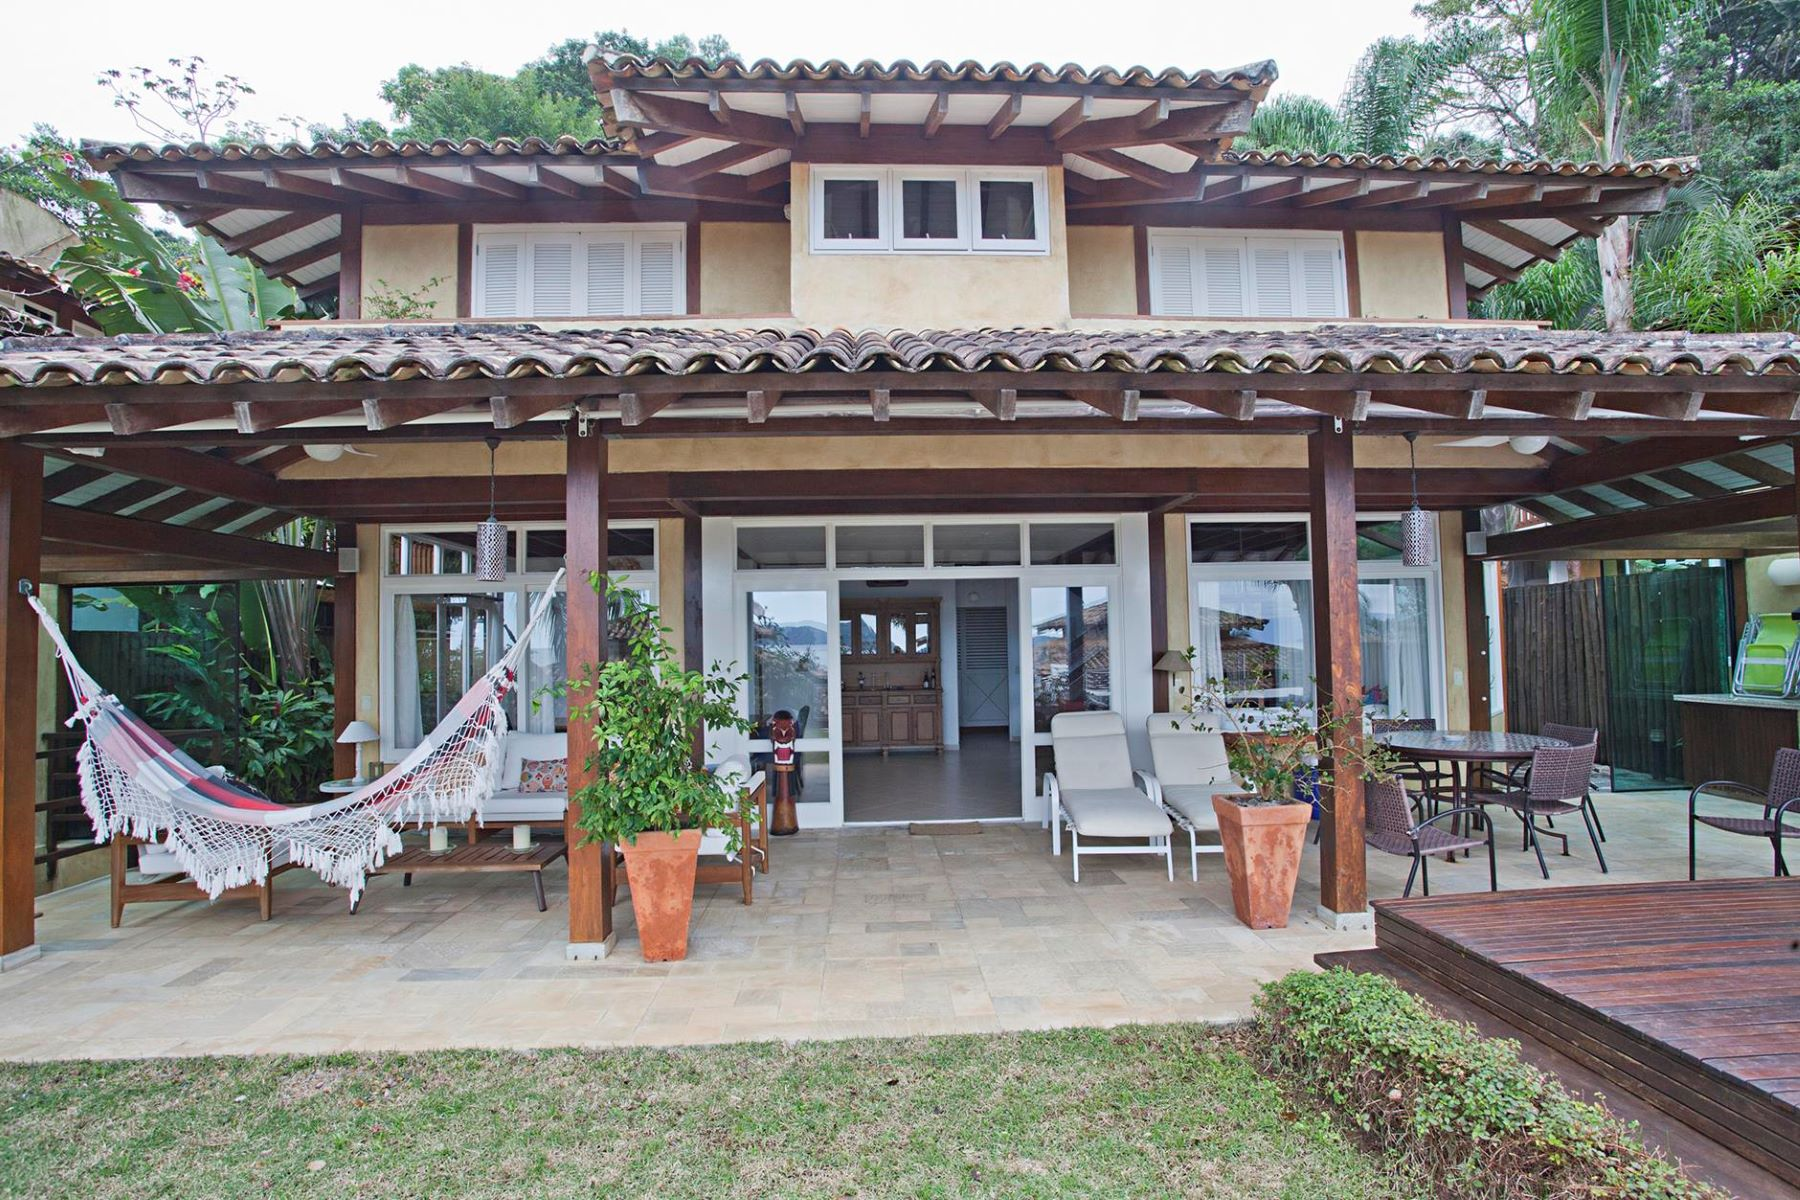 Single Family Home for Sale at Panoramic View to the Sea Avenida Mãe Bernarda Sao Sebastiao, Sao Paulo, 11600-000 Brazil